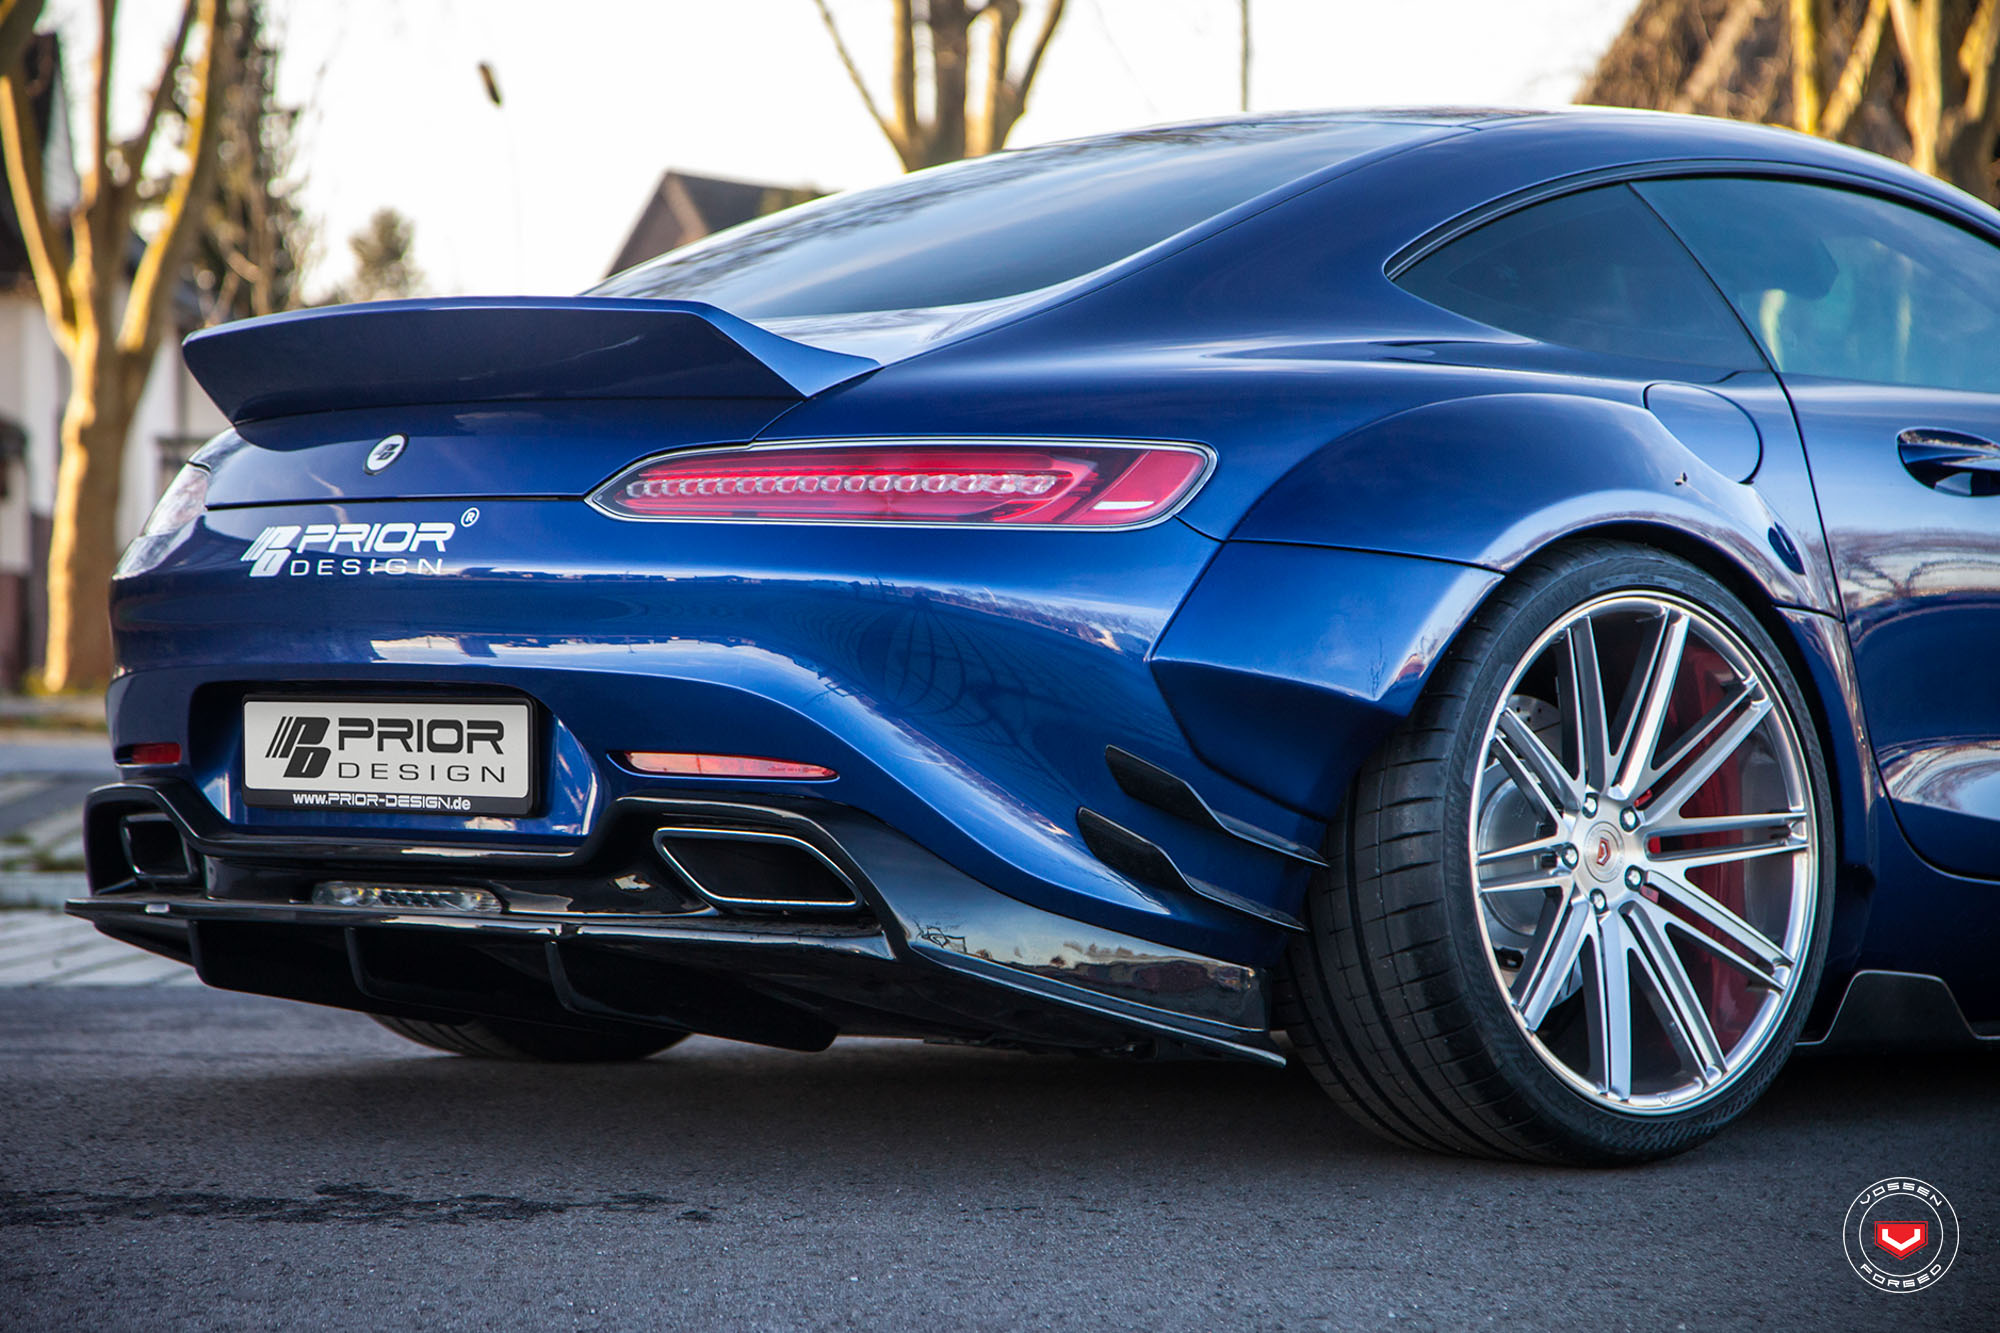 Mercedes Benz Amg Gt >> Prior Design Mercedes-AMG GT S Gets Vossen Wheels - autoevolution